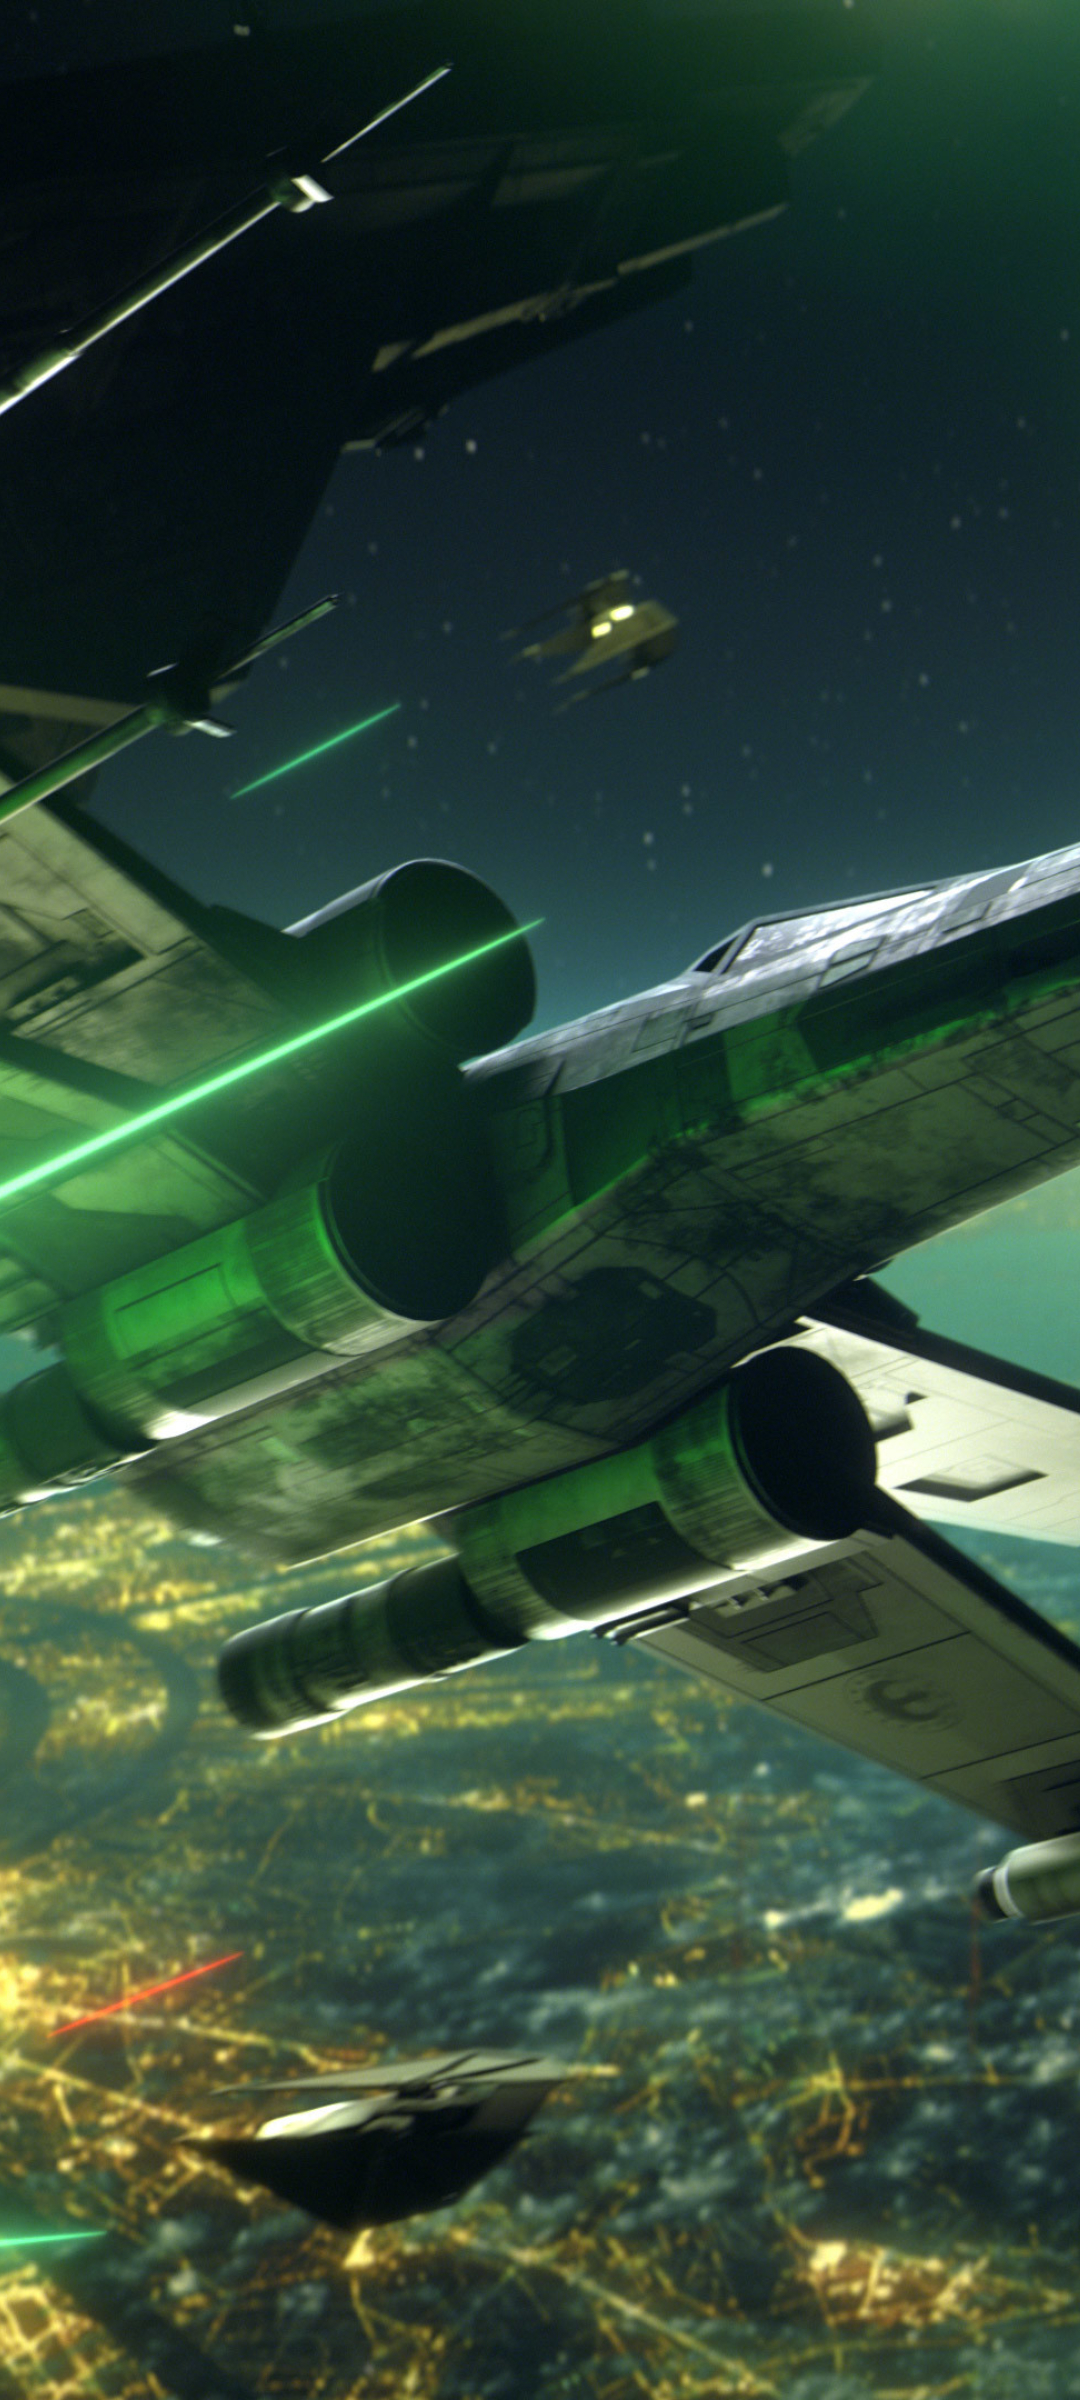 1080x2400 Star Wars Squadrons Space War 1080x2400 Resolution Wallpaper Hd Games 4k Wallpapers Images Photos And Background Wallpapers Den